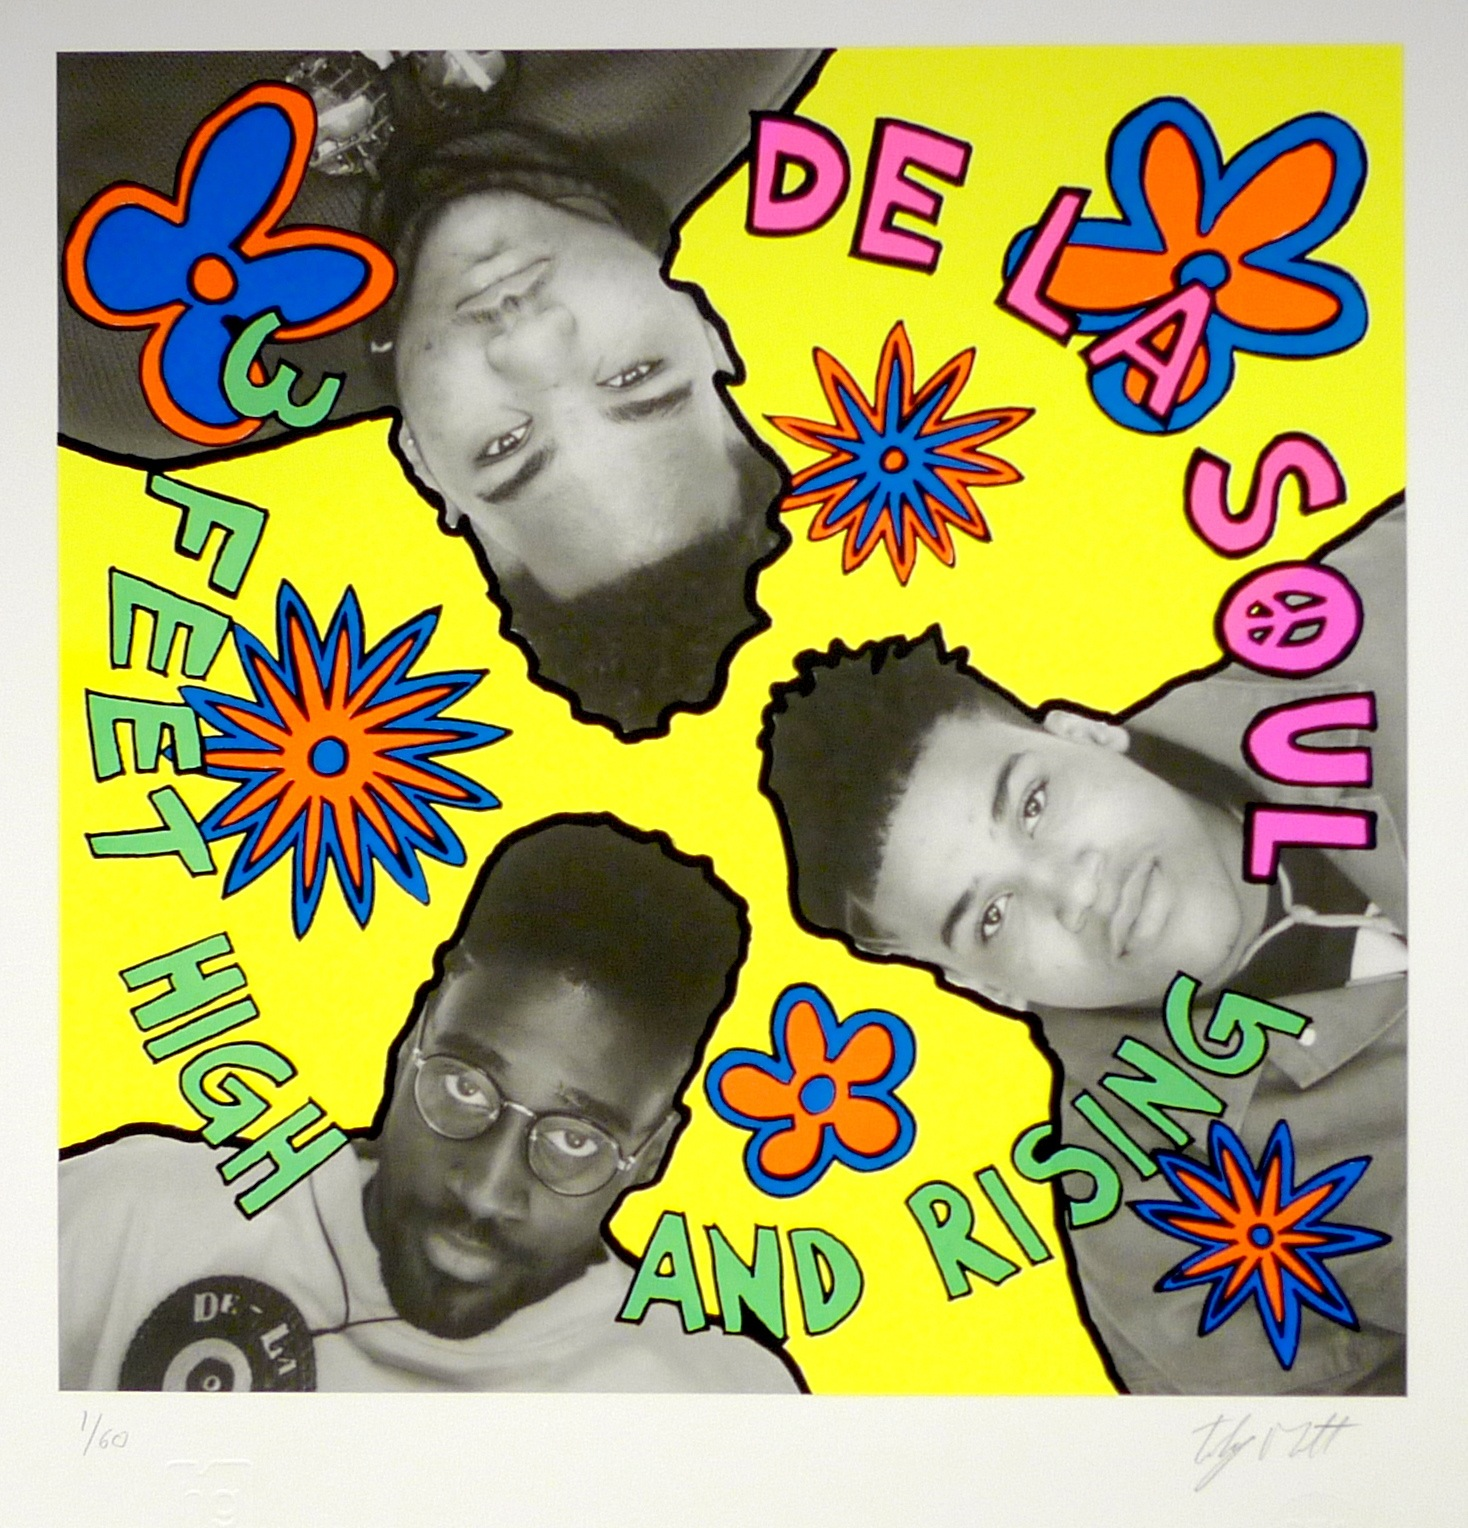 3 Feet and Rising by De La Soul